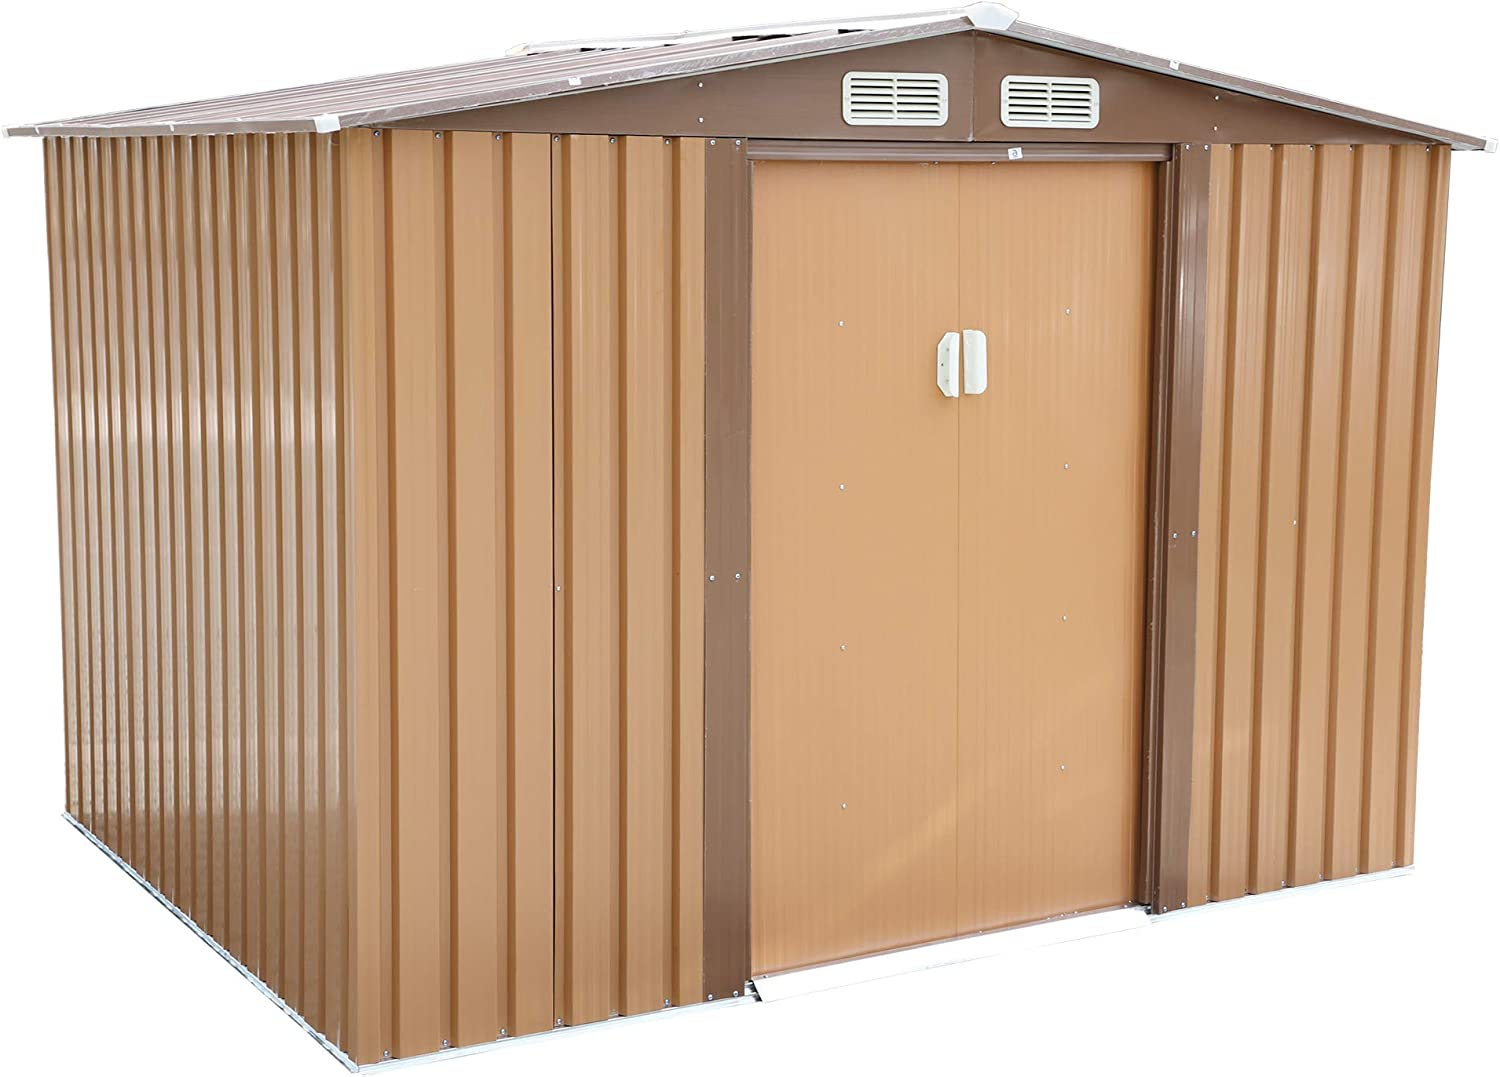 JAXPETY 8' x 6' Large Outdoor Metal Storage Shed Backyard Garden Steel Utility Tool Shed Lawn Building Garage Organizer w/ Sliding Door, Roof and 2 Vents, Coffee